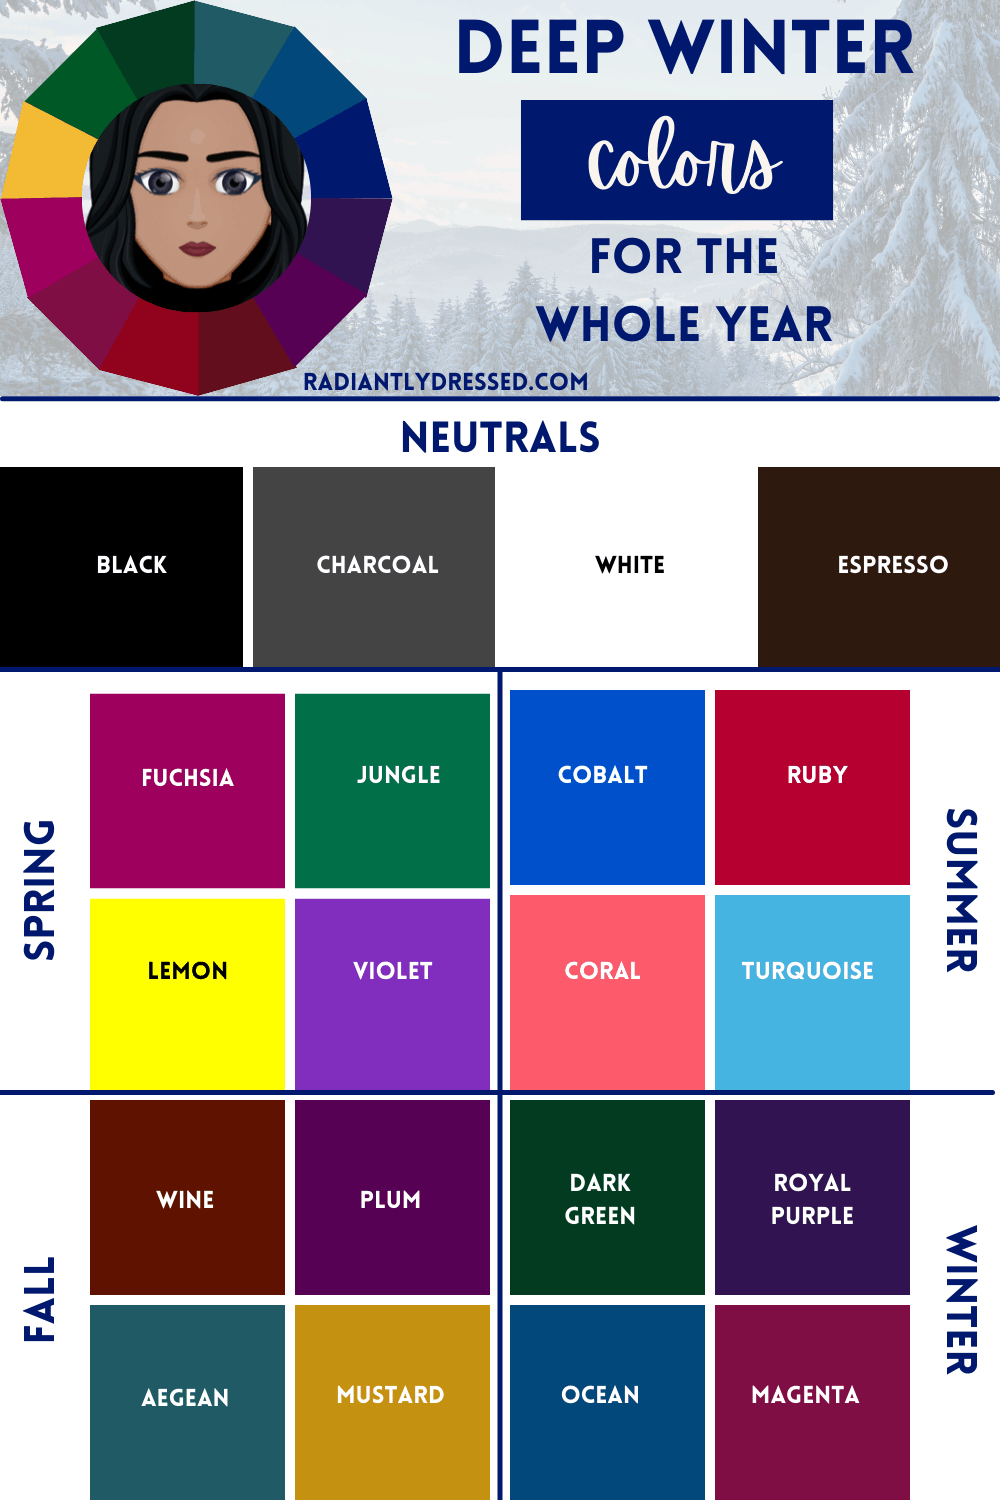 Year Round Colors for Deep Winter